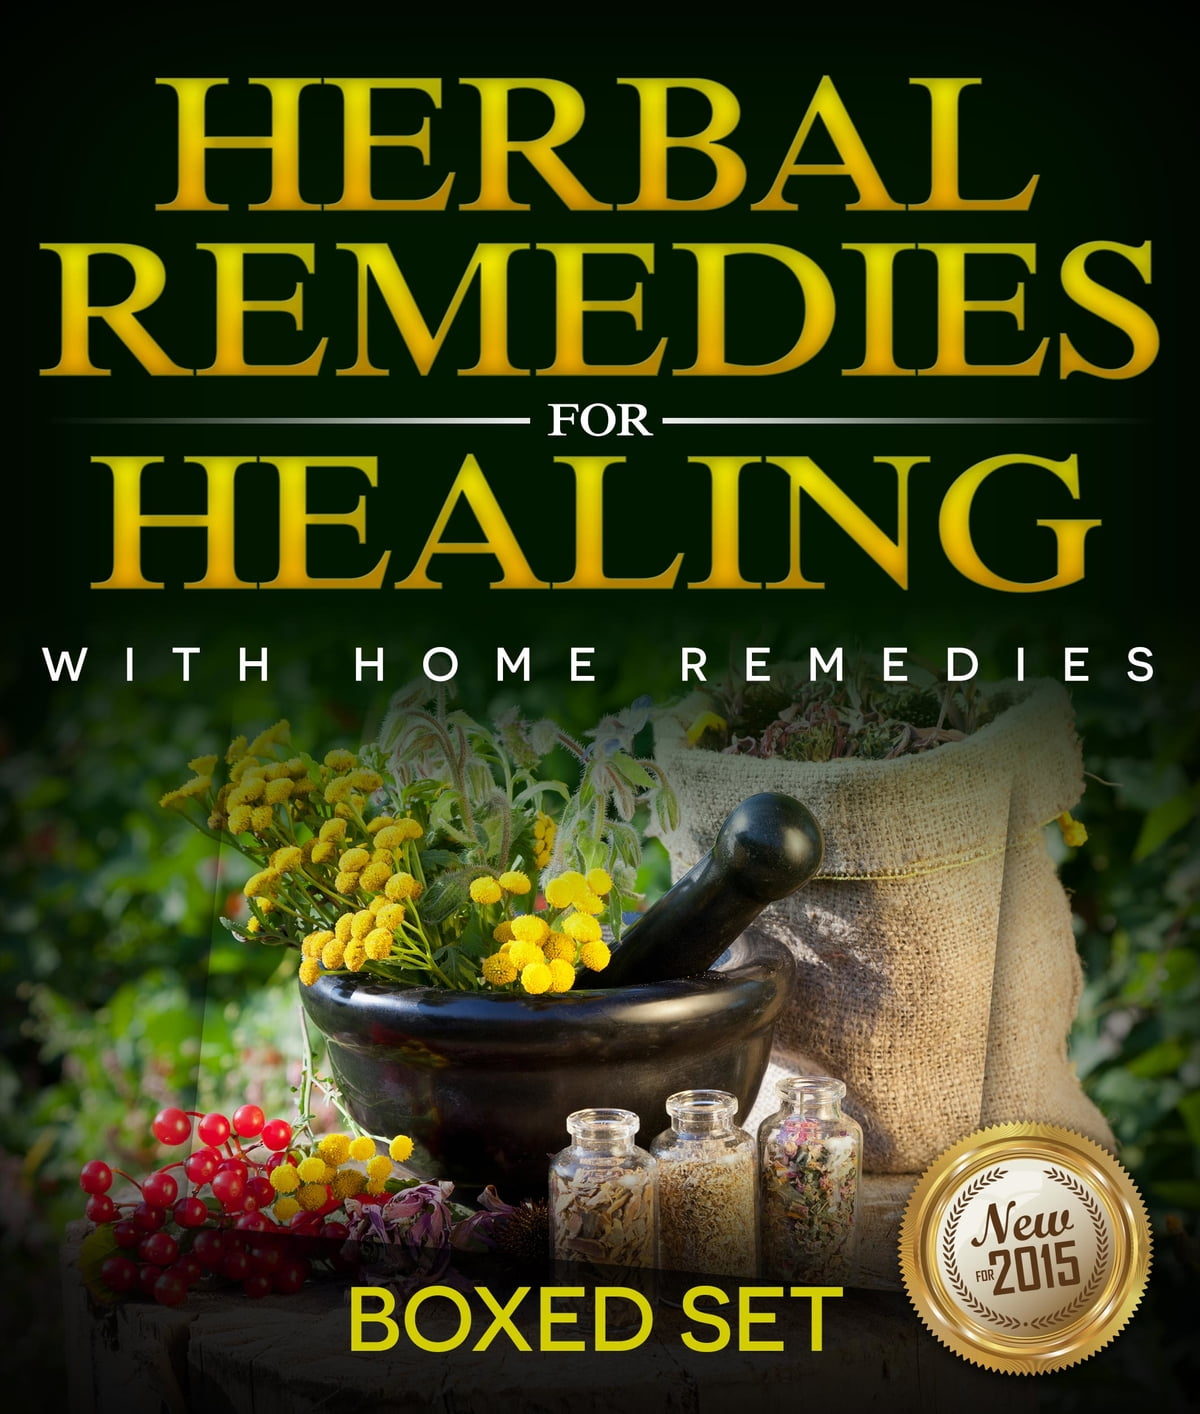 35325e36ea4c9 Herbal Remedies For Healing With Home Remedies: 3 Books In 1 Boxed ...